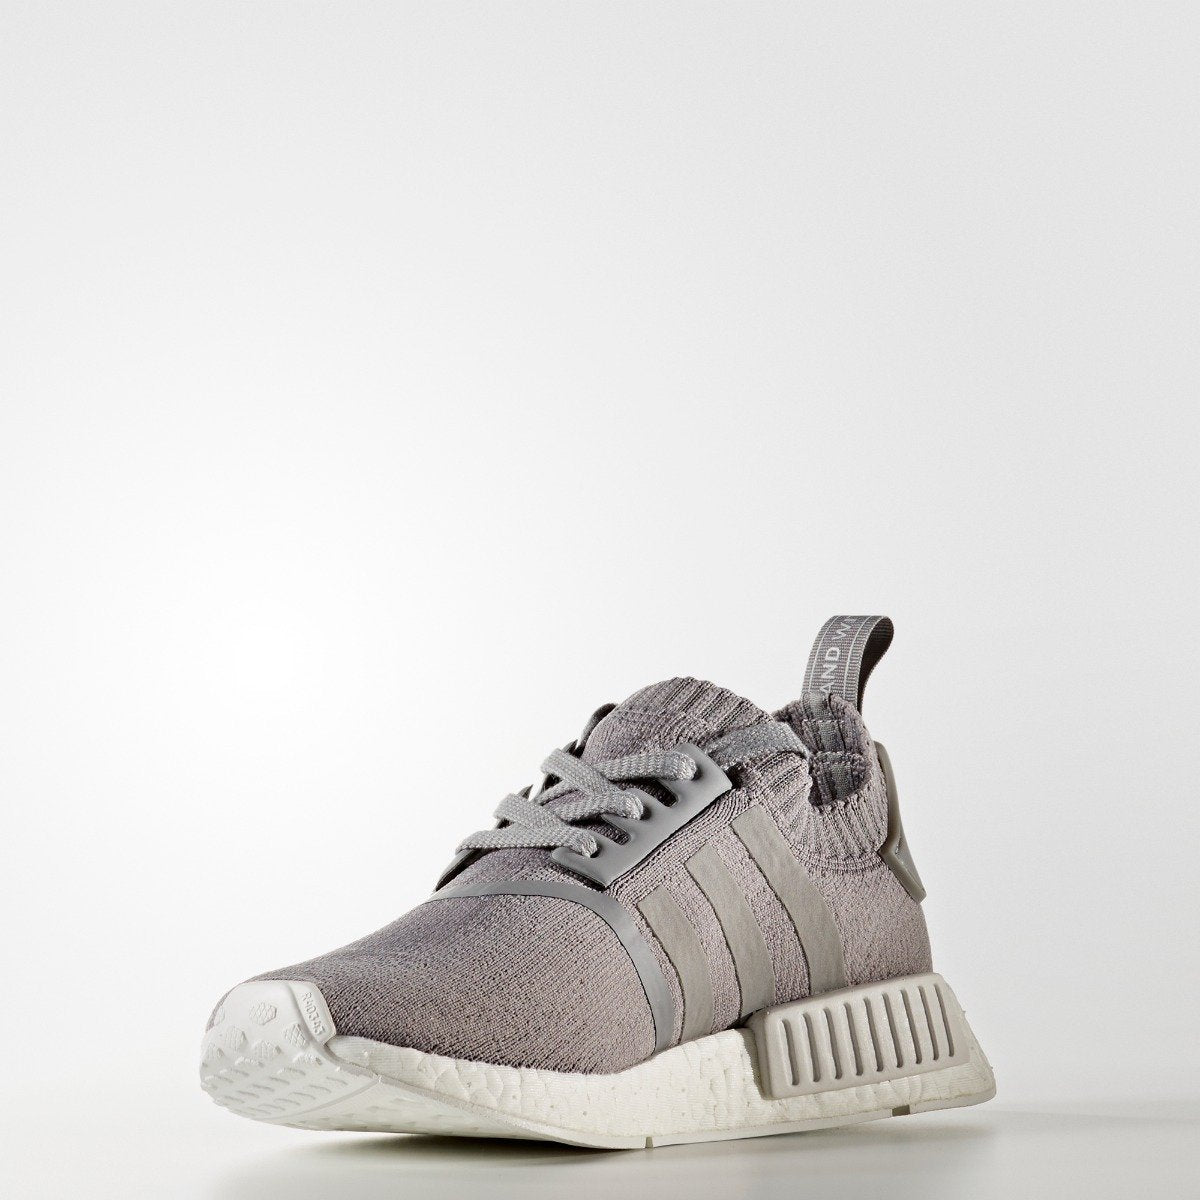 online retailer 7bf45 aab25 Womens adidas Originals NMD R1 Primeknit Shoes Grey with White. 1